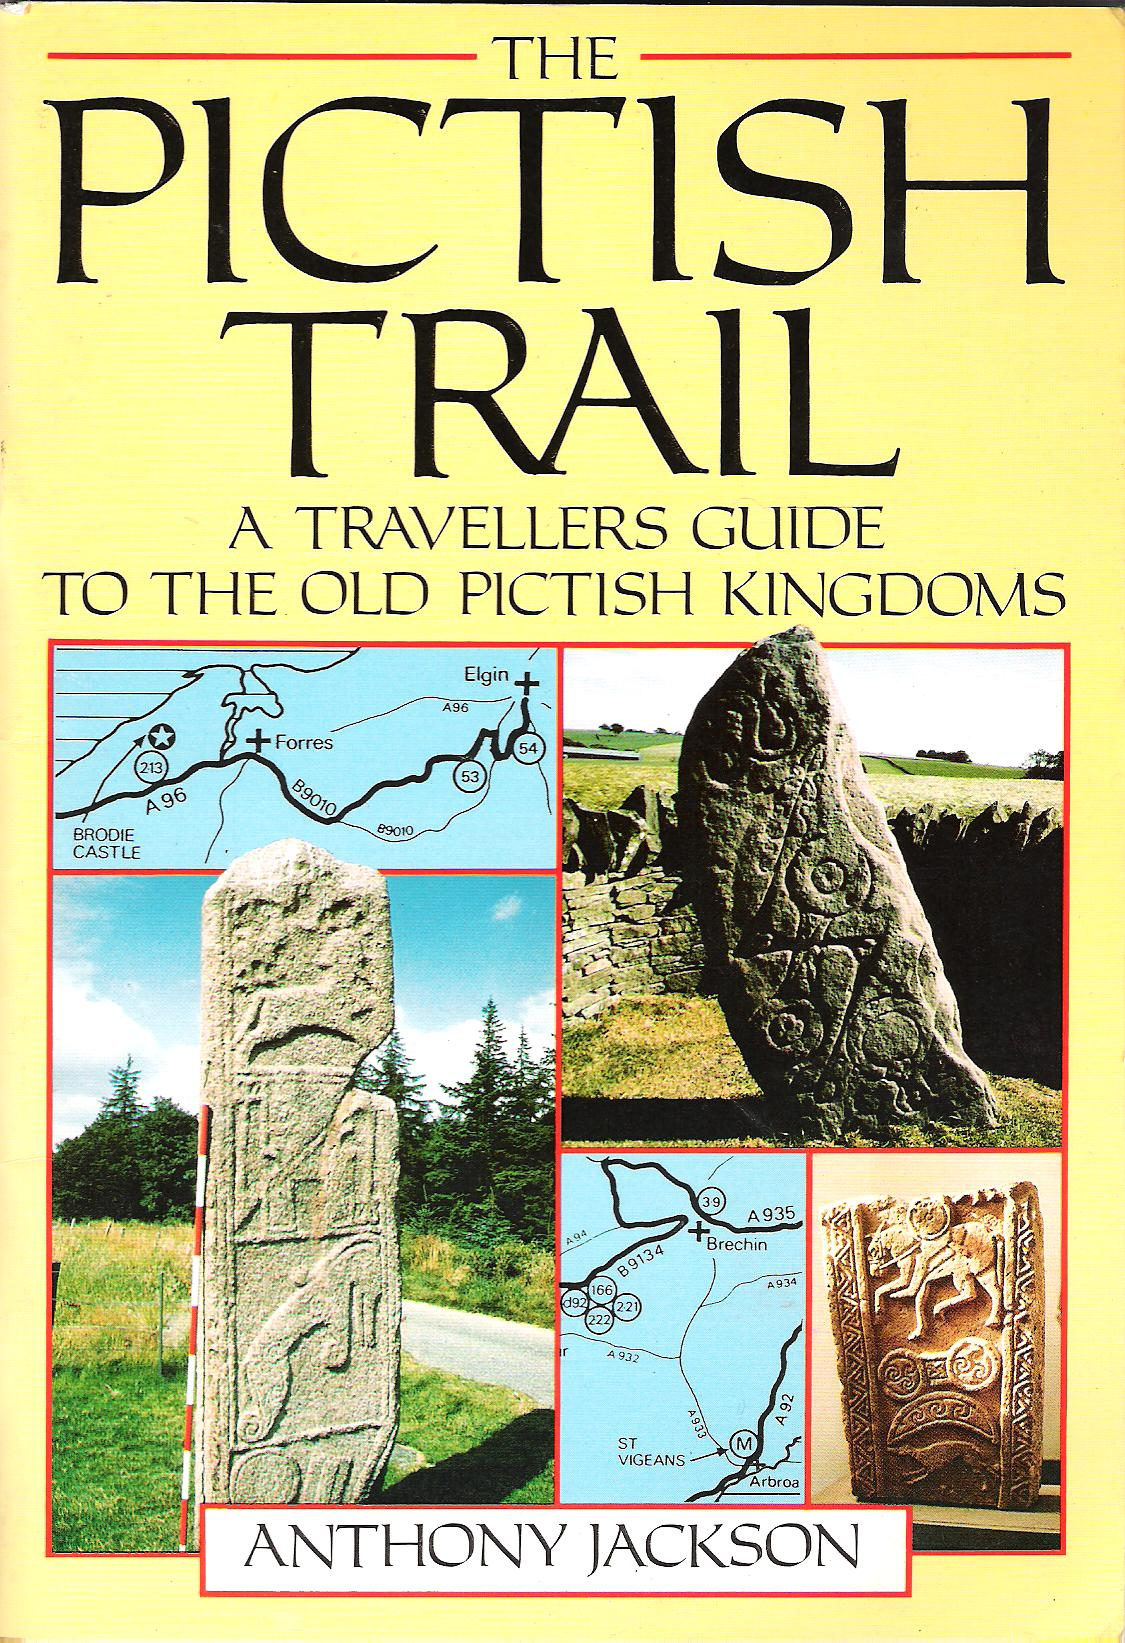 Image for The Pictish Trail: A Travellers Guide to the Old Pictish Kingdoms.